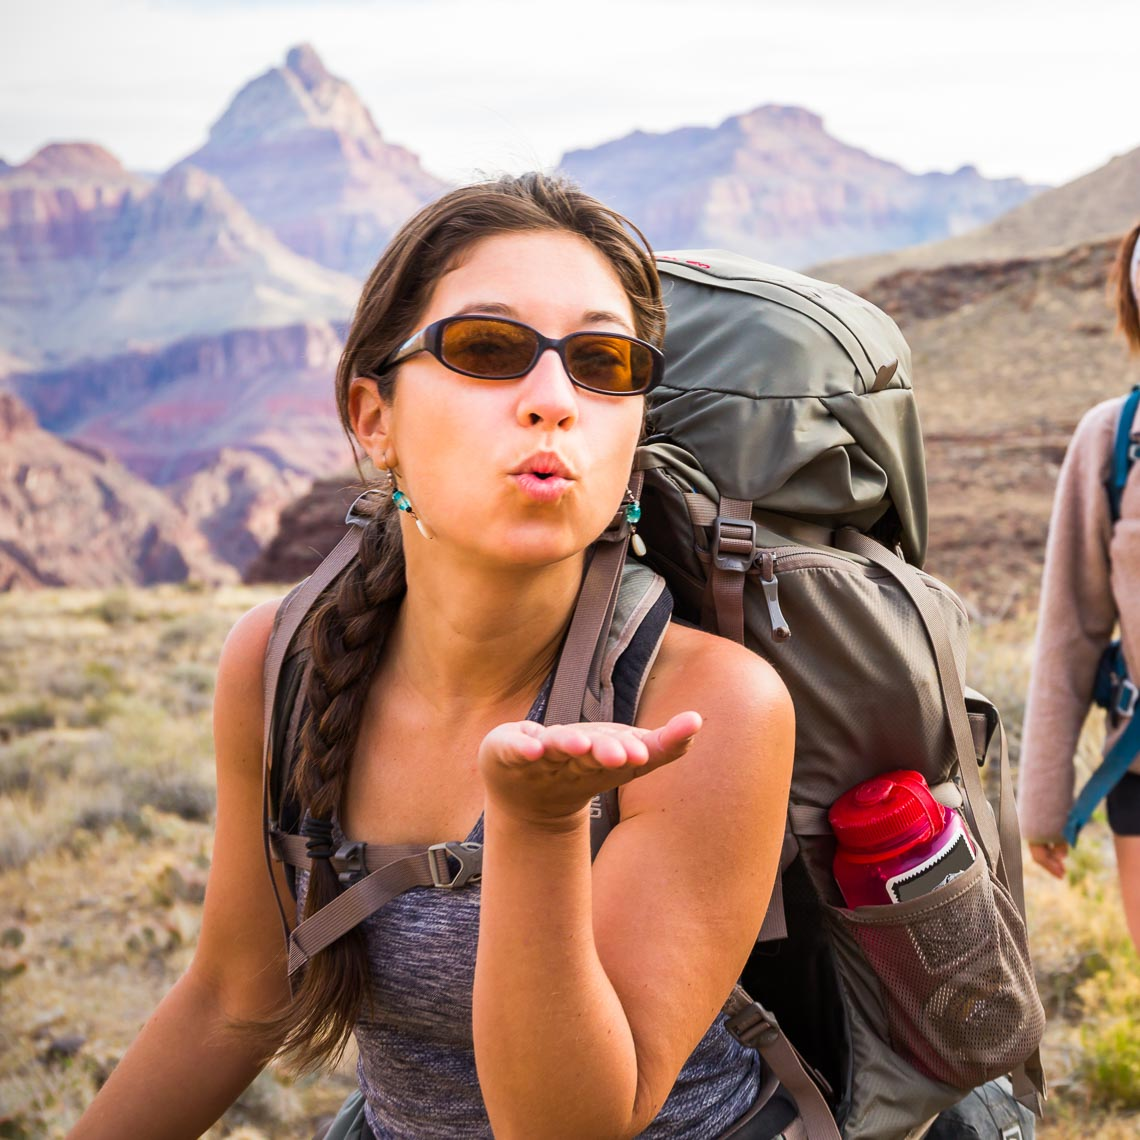 Grand Canyon Backpack Adventure Hiker Greeting | Michael DeYoung